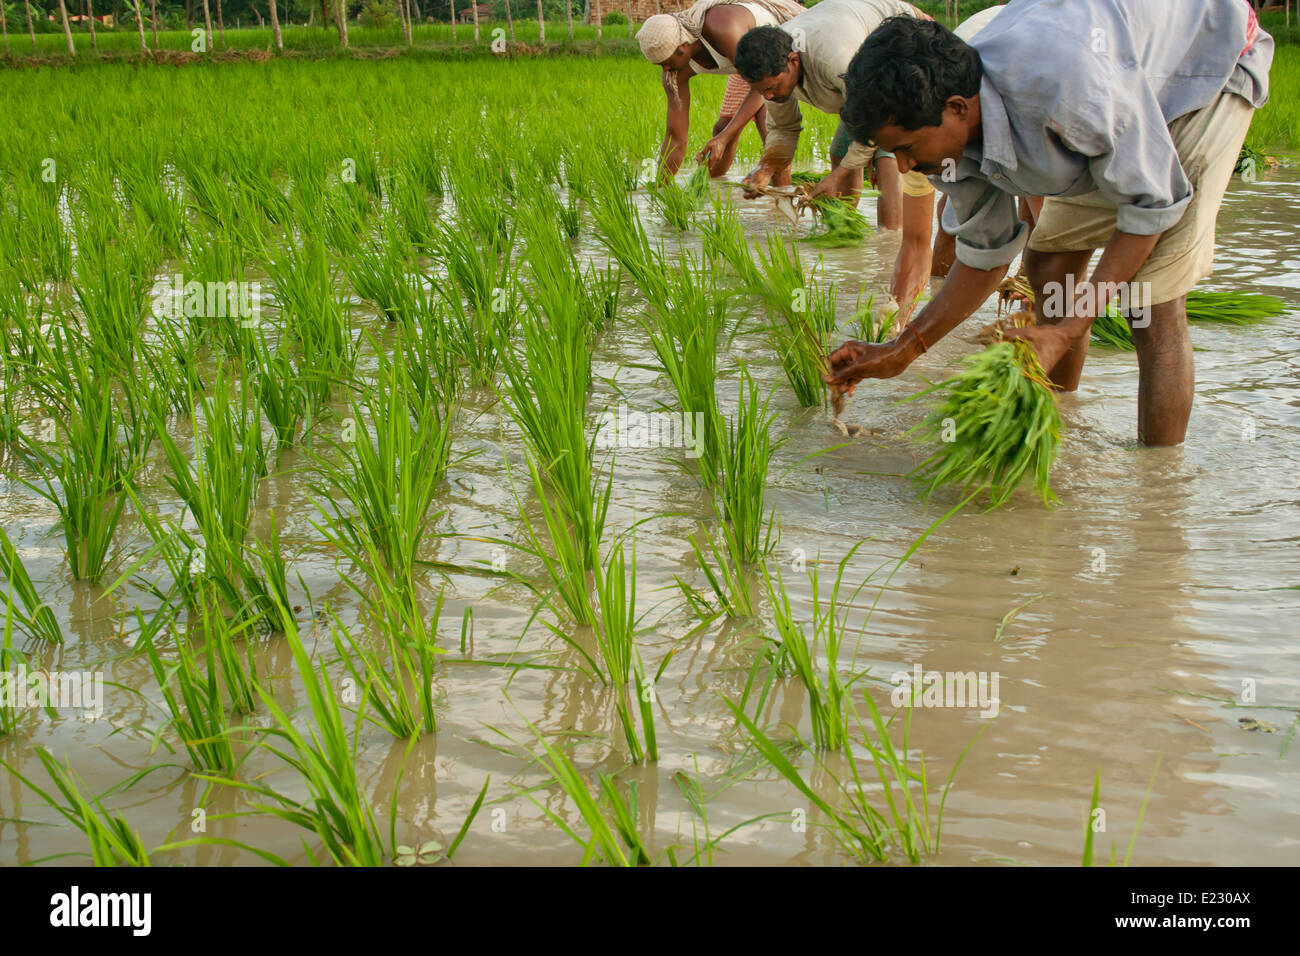 People planting rice in a paddy field in West bengle ...  People planting...